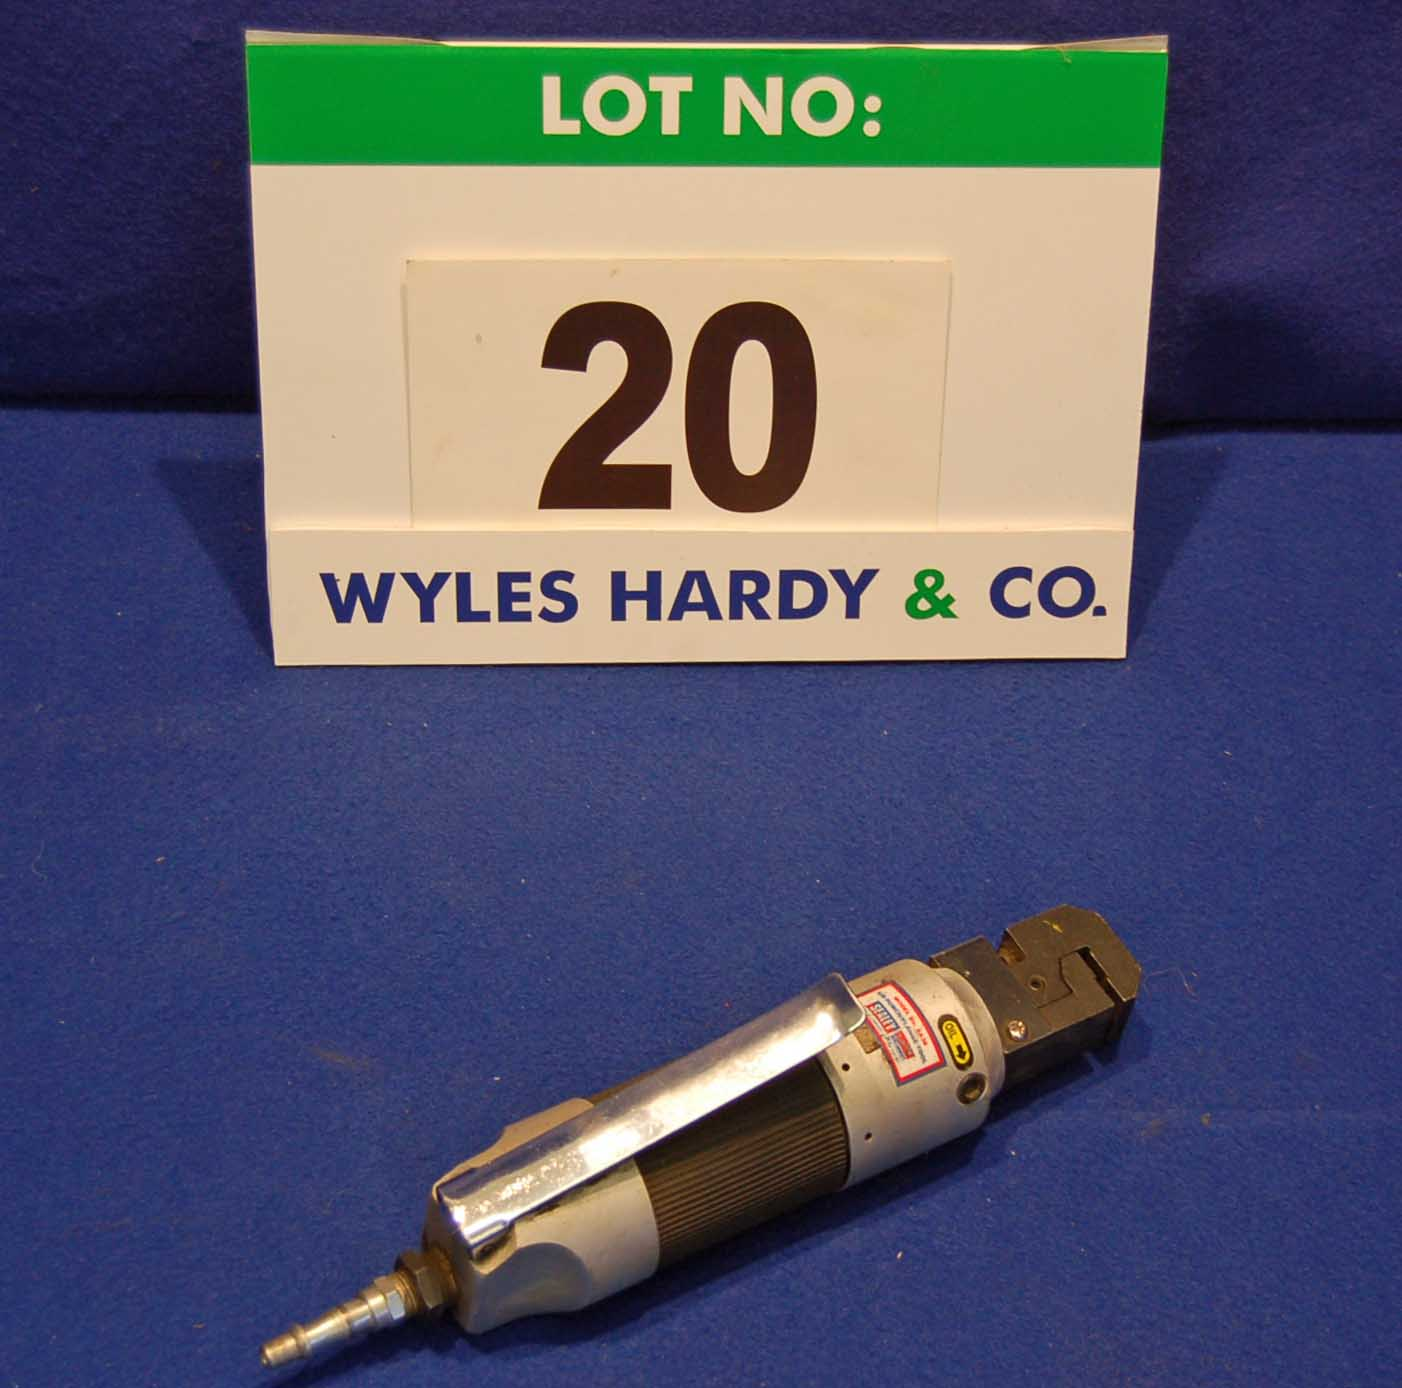 Lot 20 - A SEALEY Air Punch and Flange Forming Tool